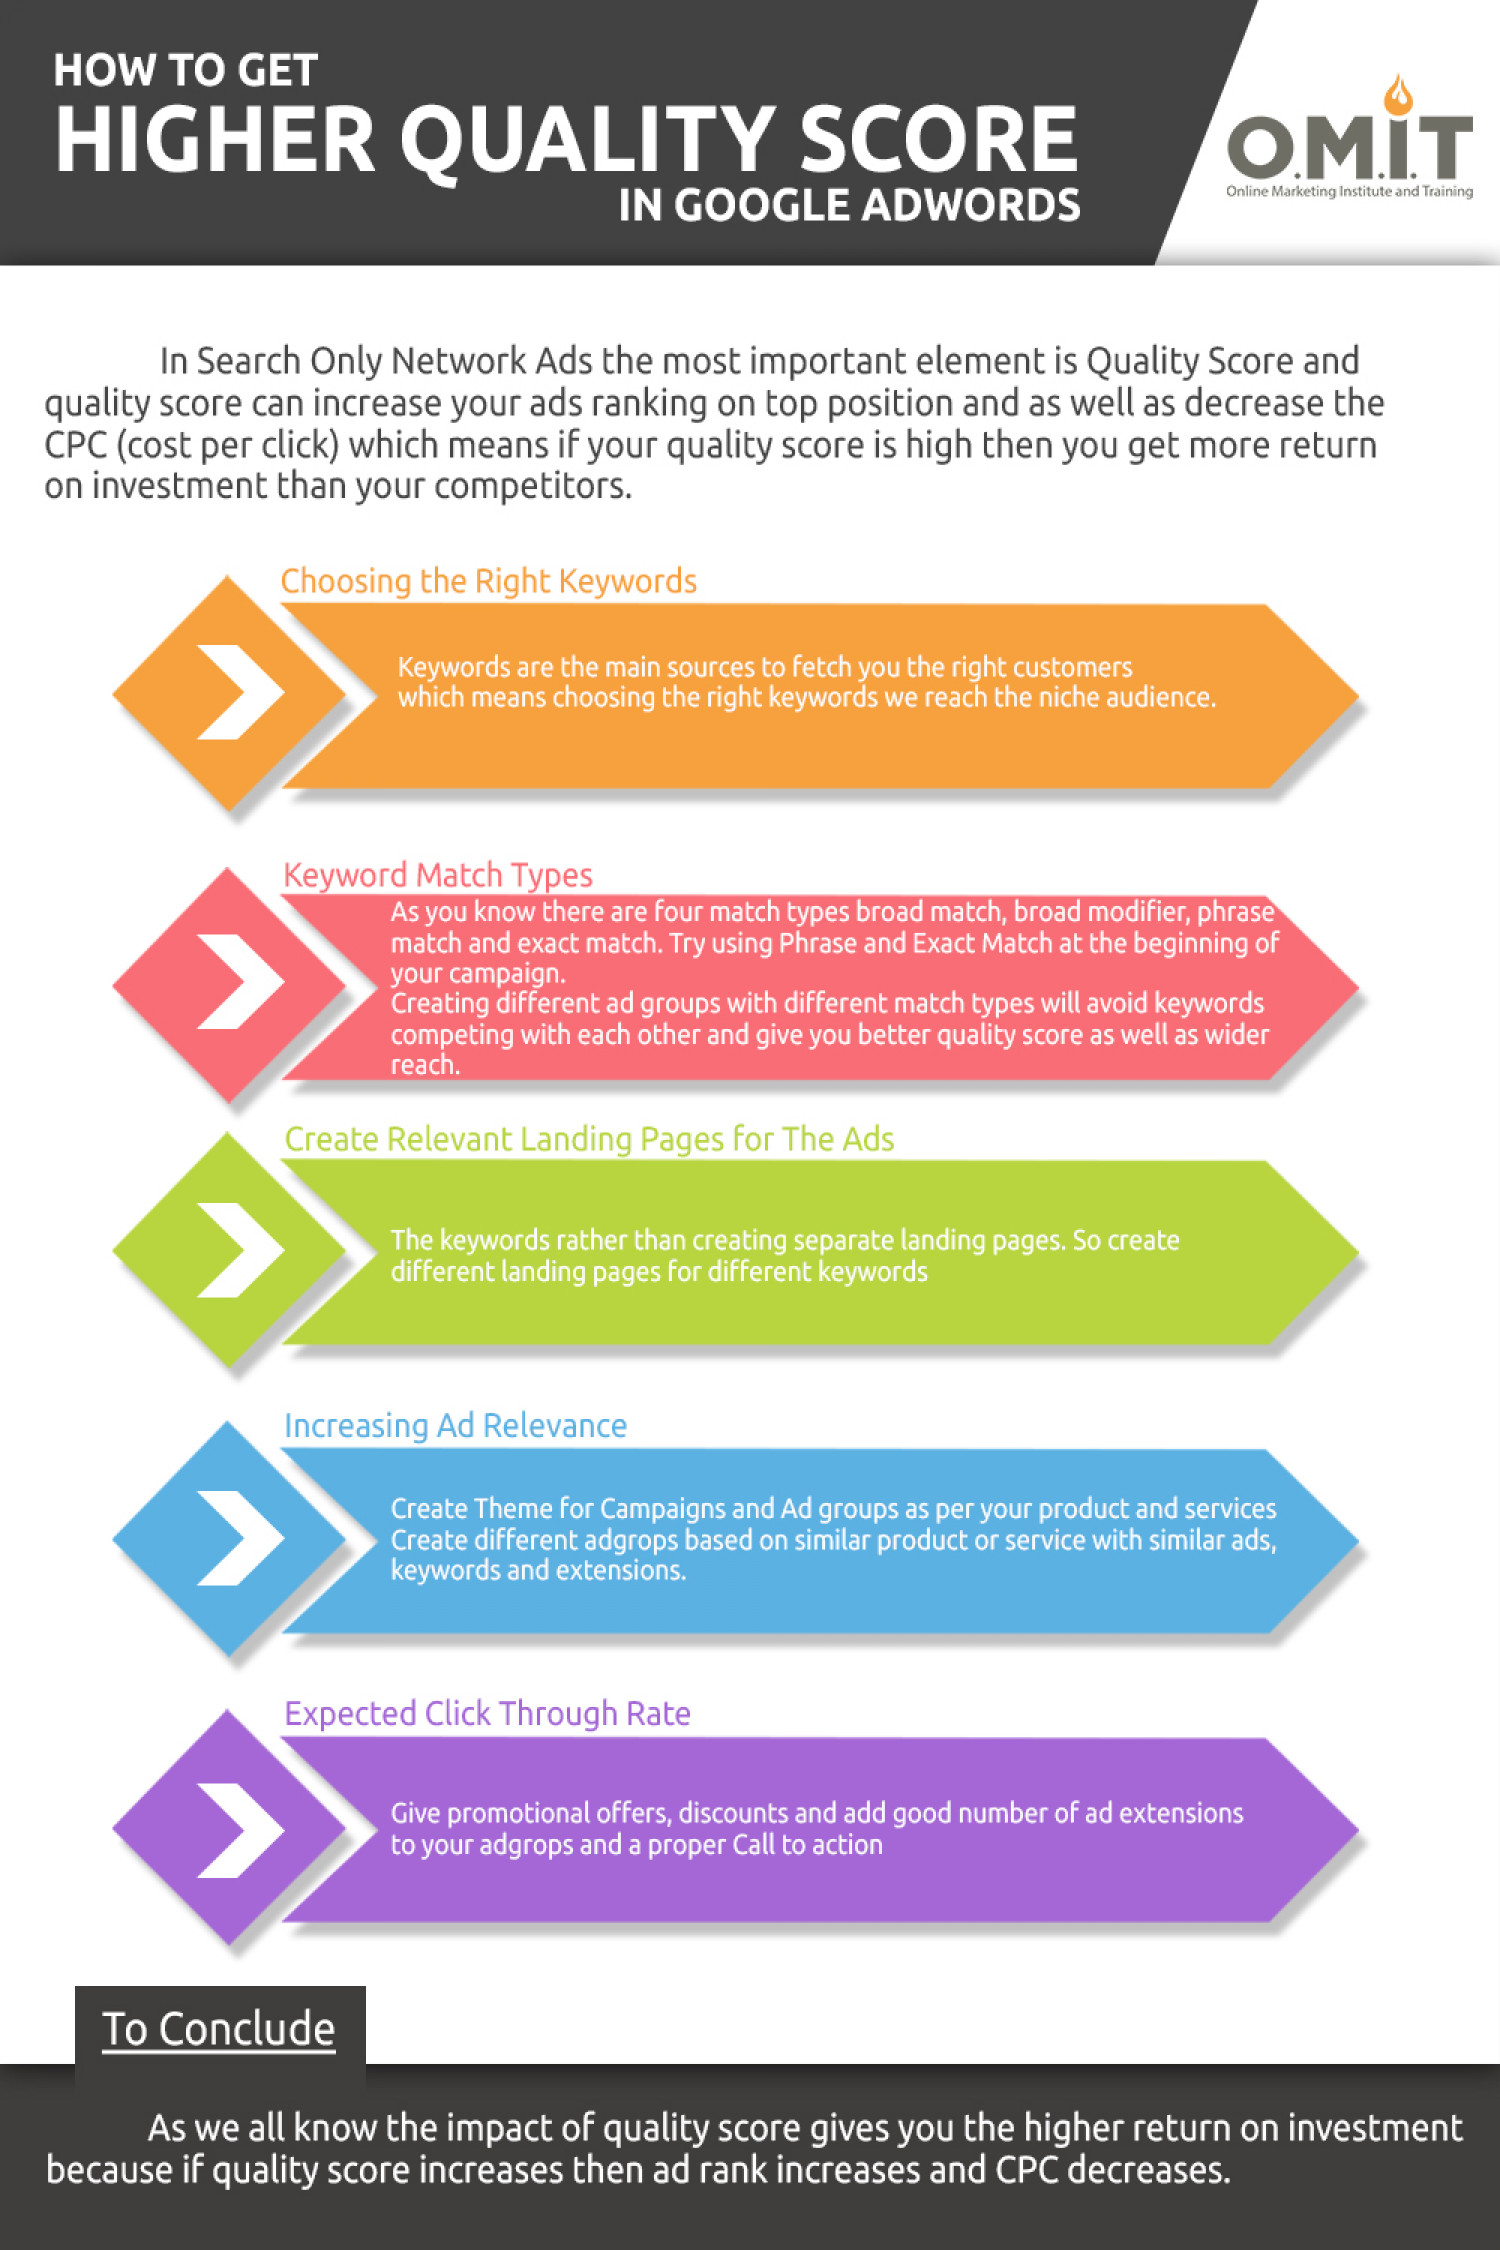 How to get Higher Quality Score in Google Adwords Infographic